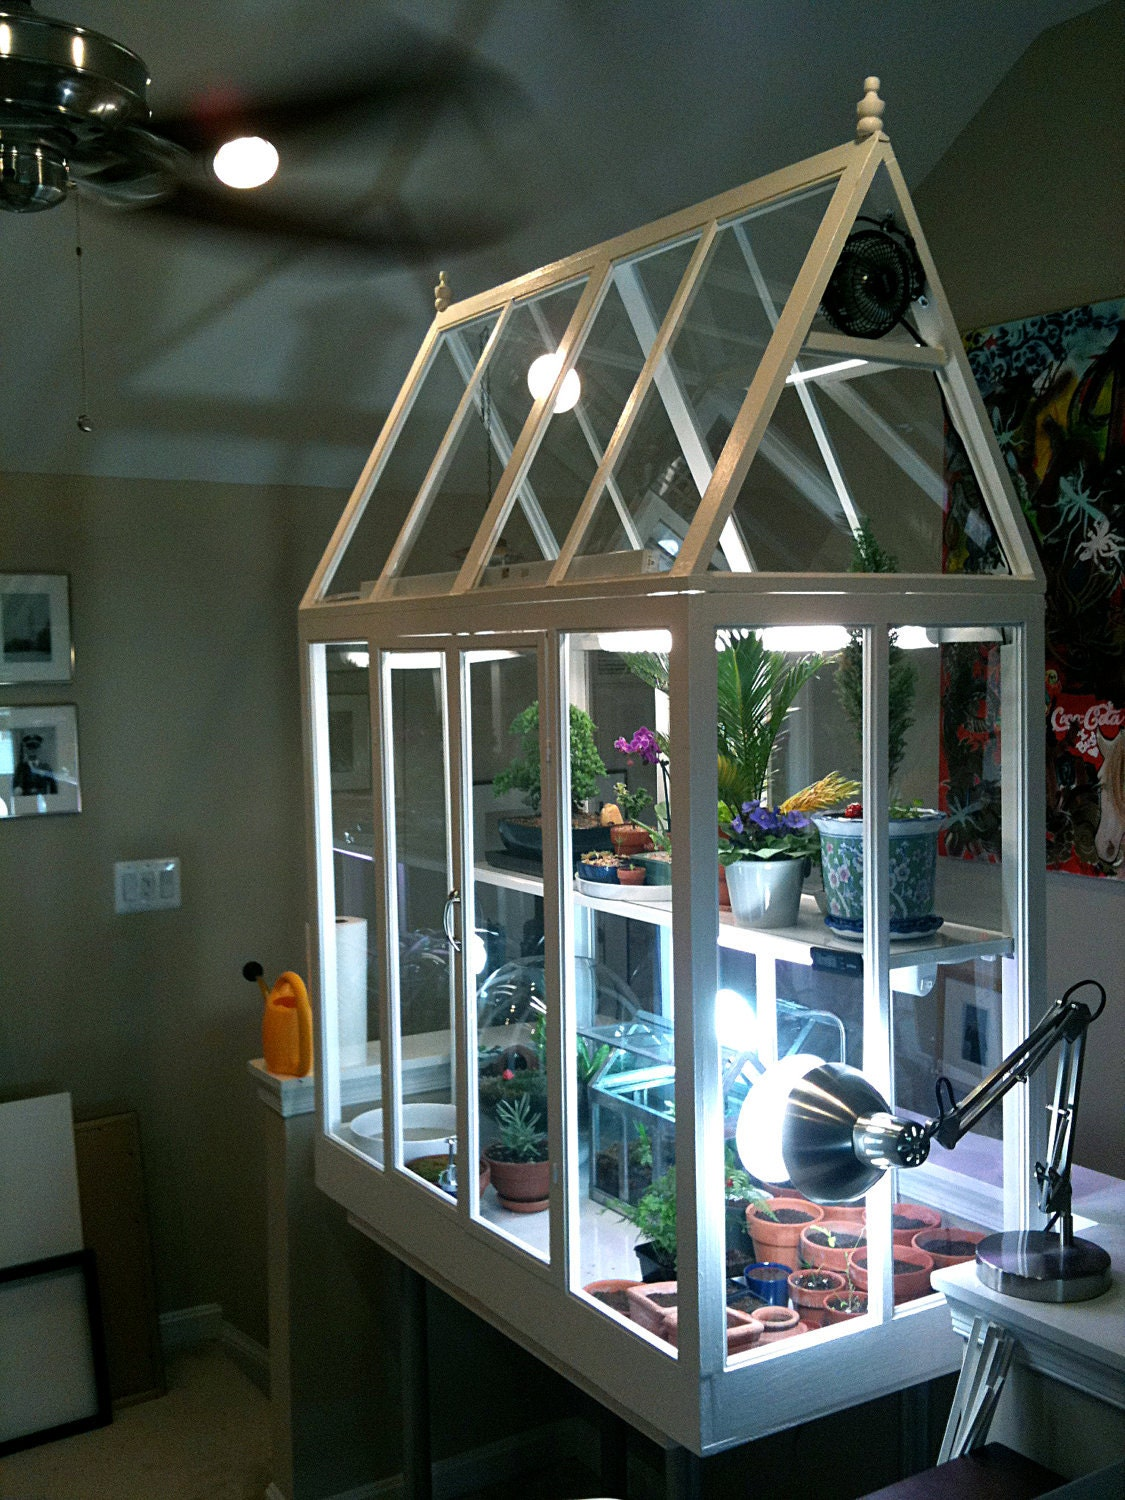 Incredible custom indoor greenhouse one of a kind by for Custom build your own home